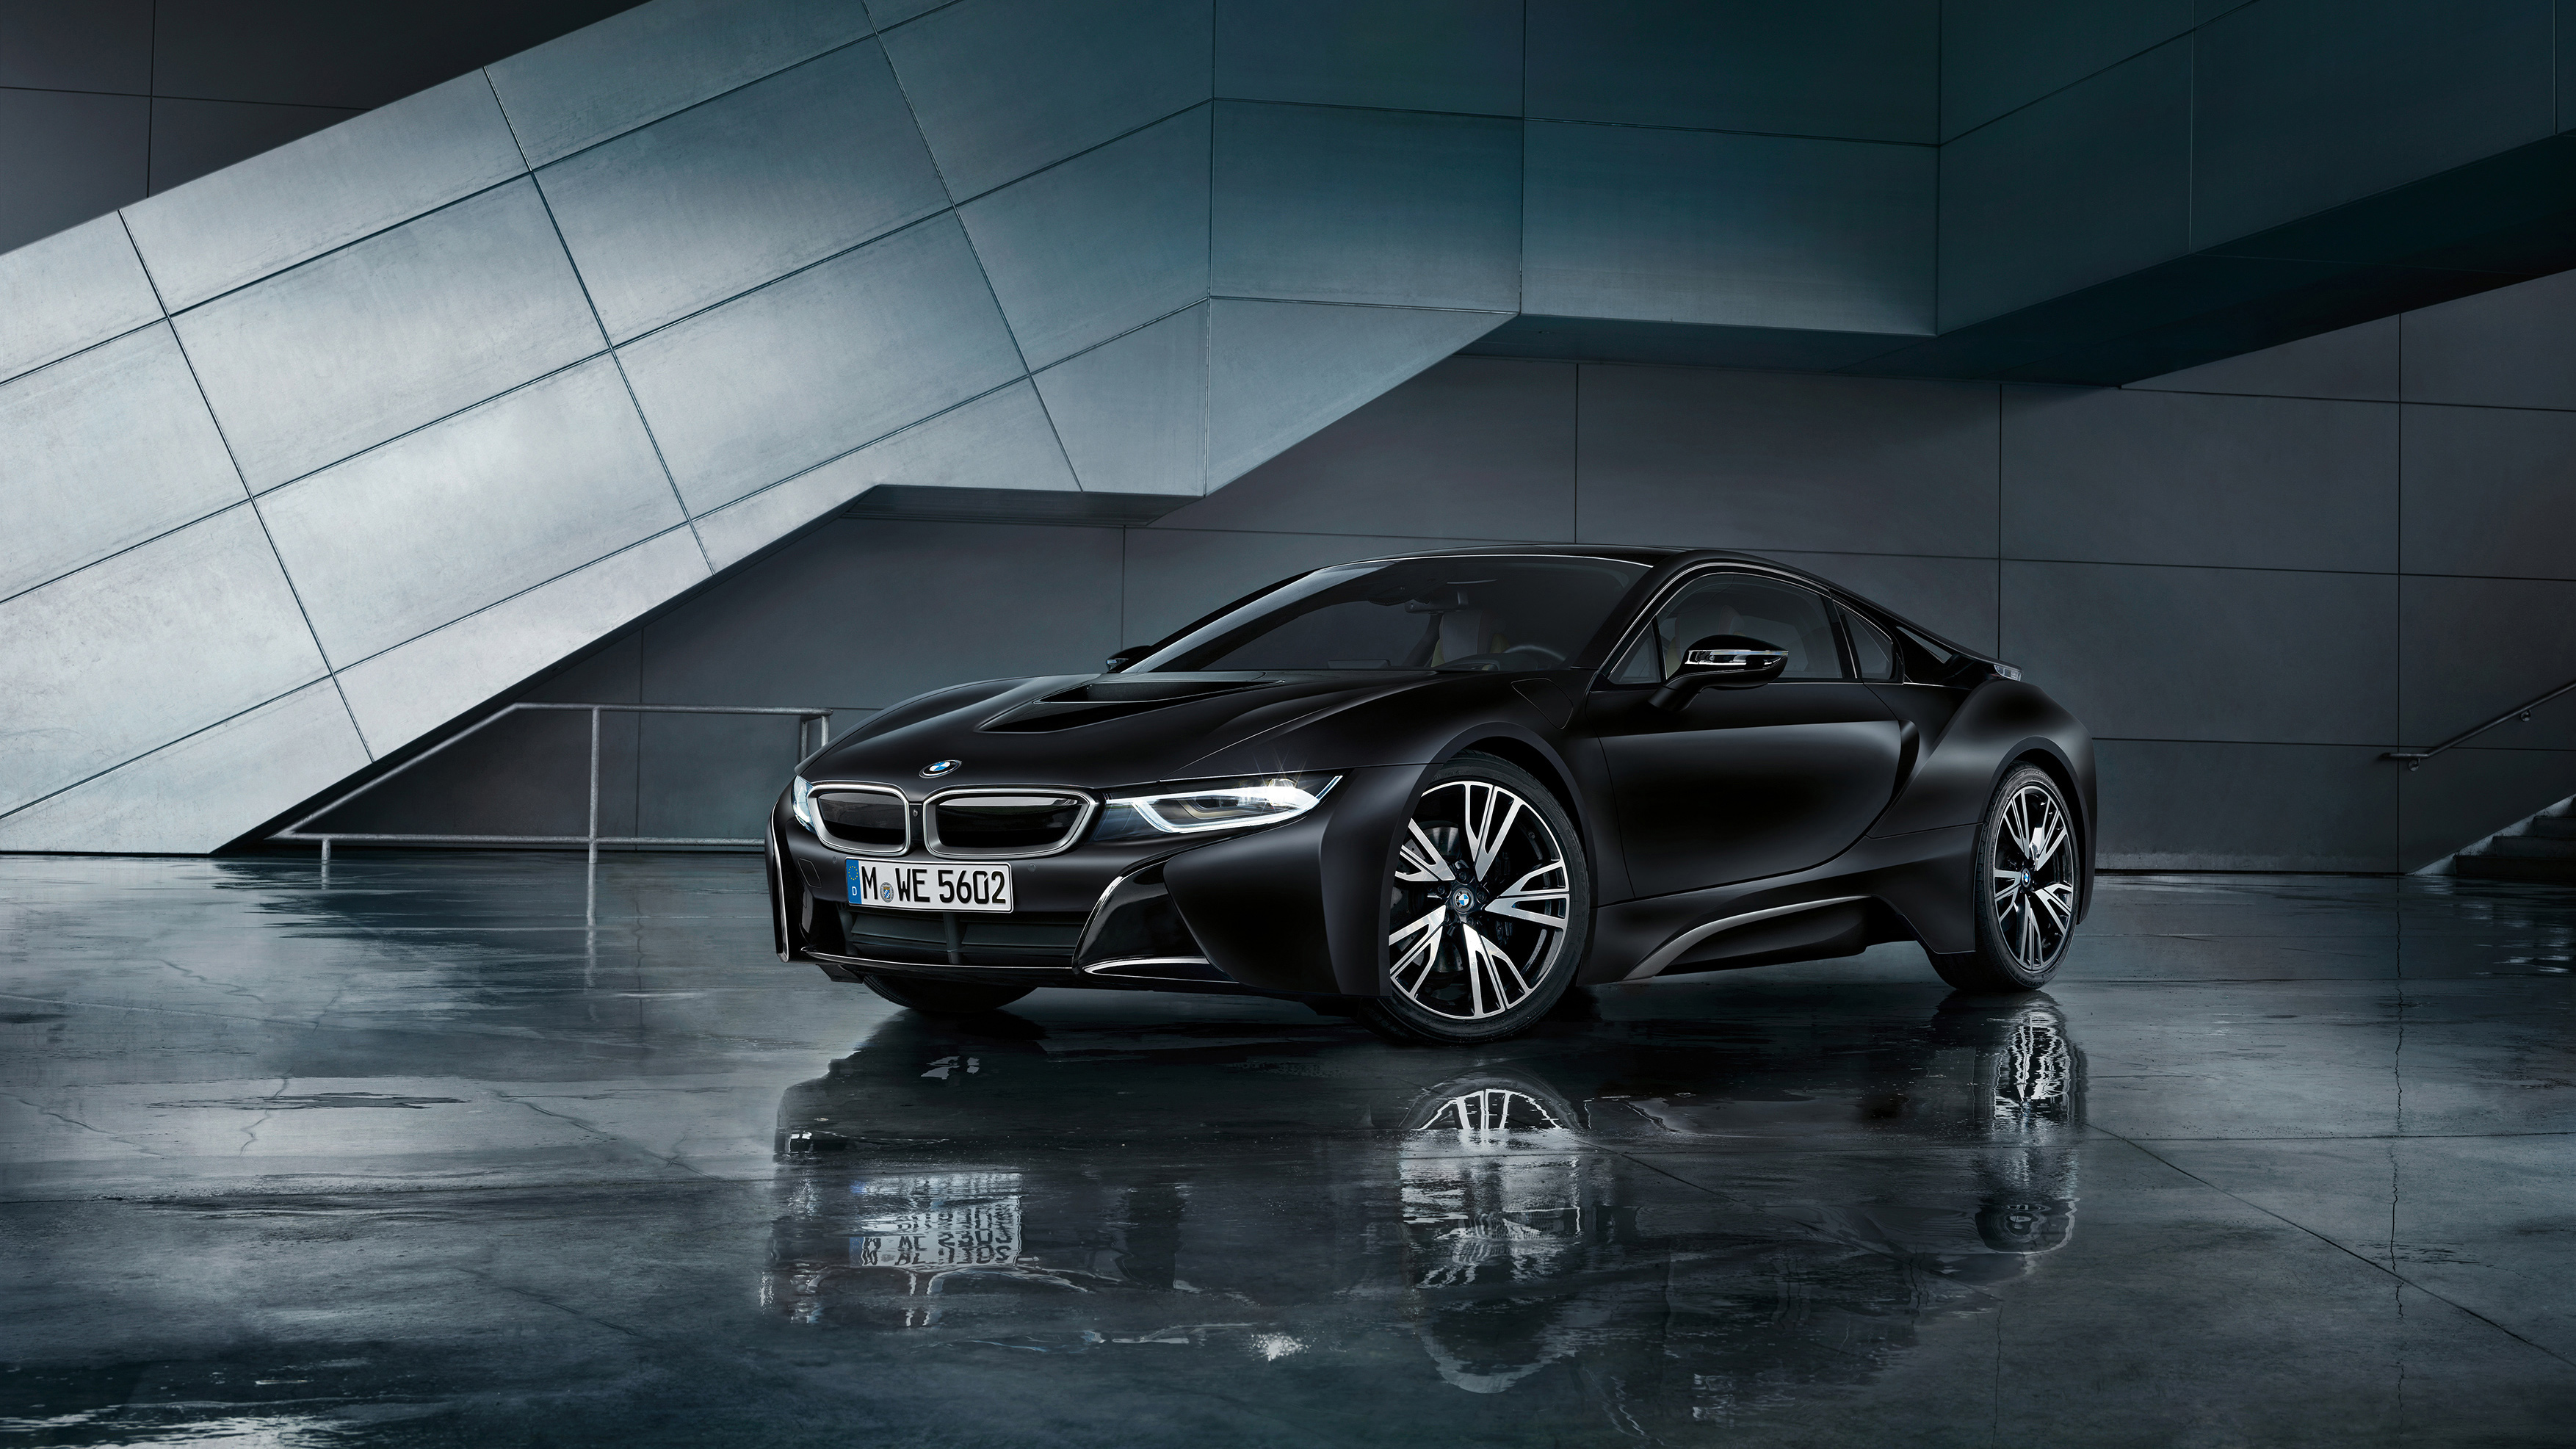 BMW i8 Frozen Black 2017 Wallpaper | HD Car Wallpapers